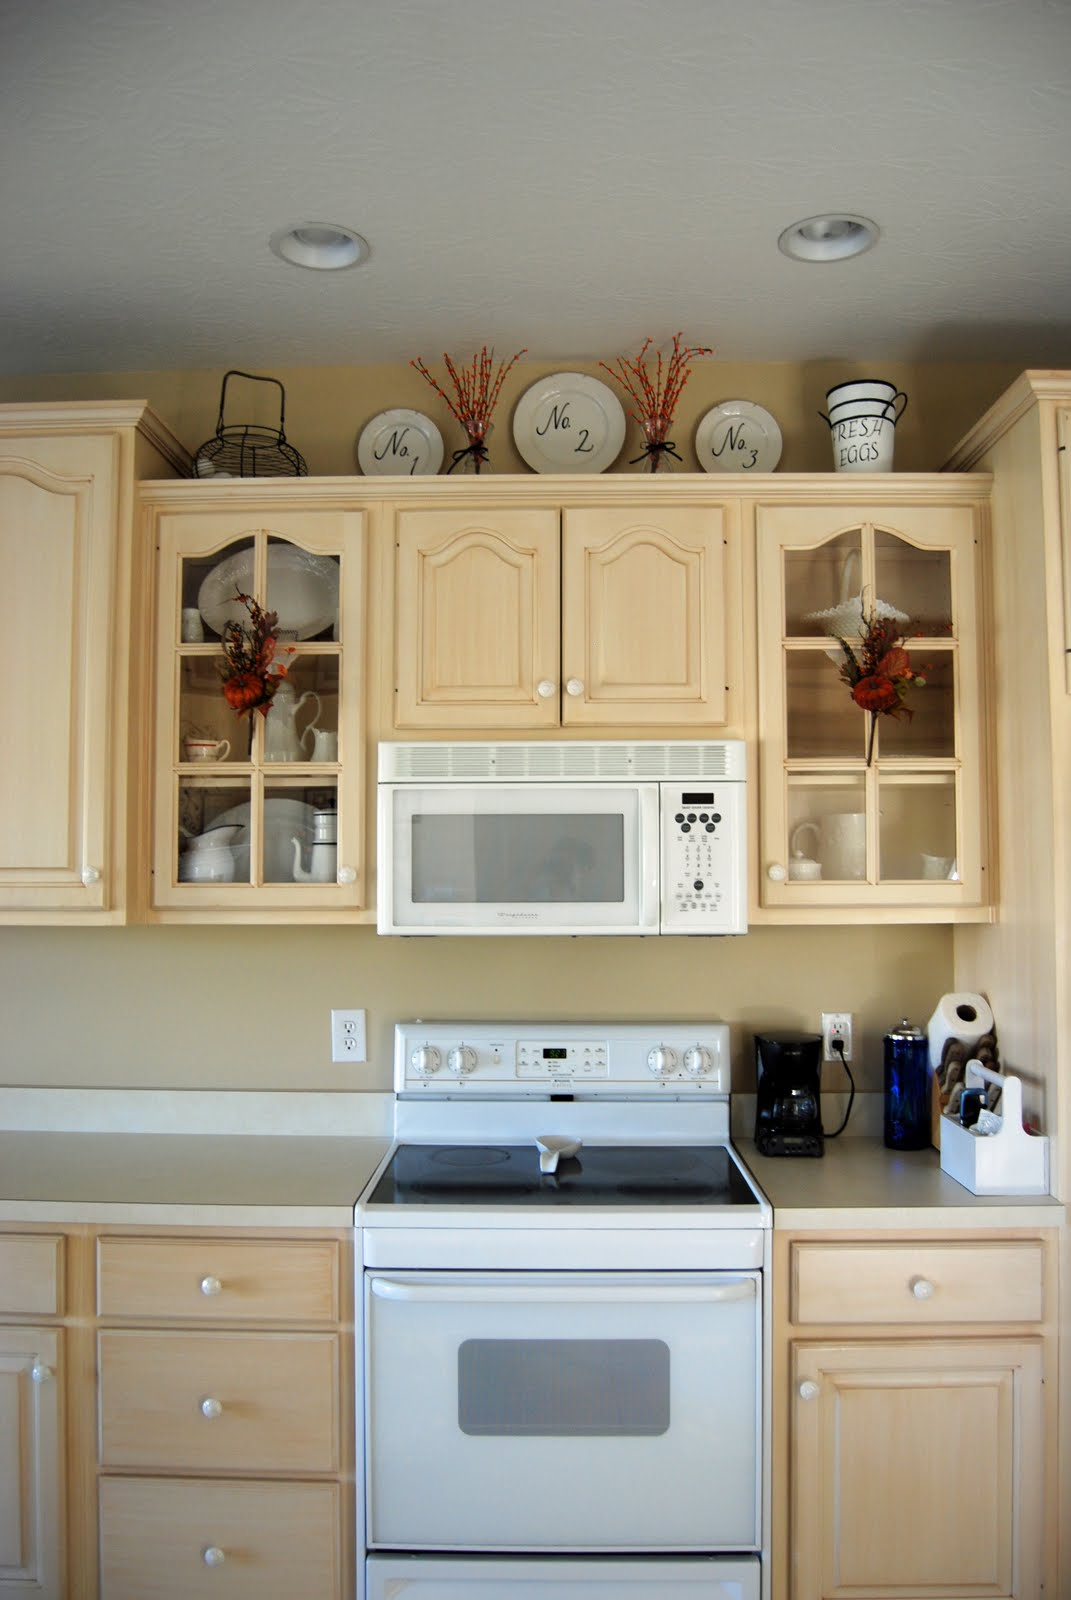 Inspired by you: Kitchen Fall How to Decorate above Kitchen Kitchen Cabinets ? Ideas for Decorating Over - Decor For On Top Of Kitchen Cabinets